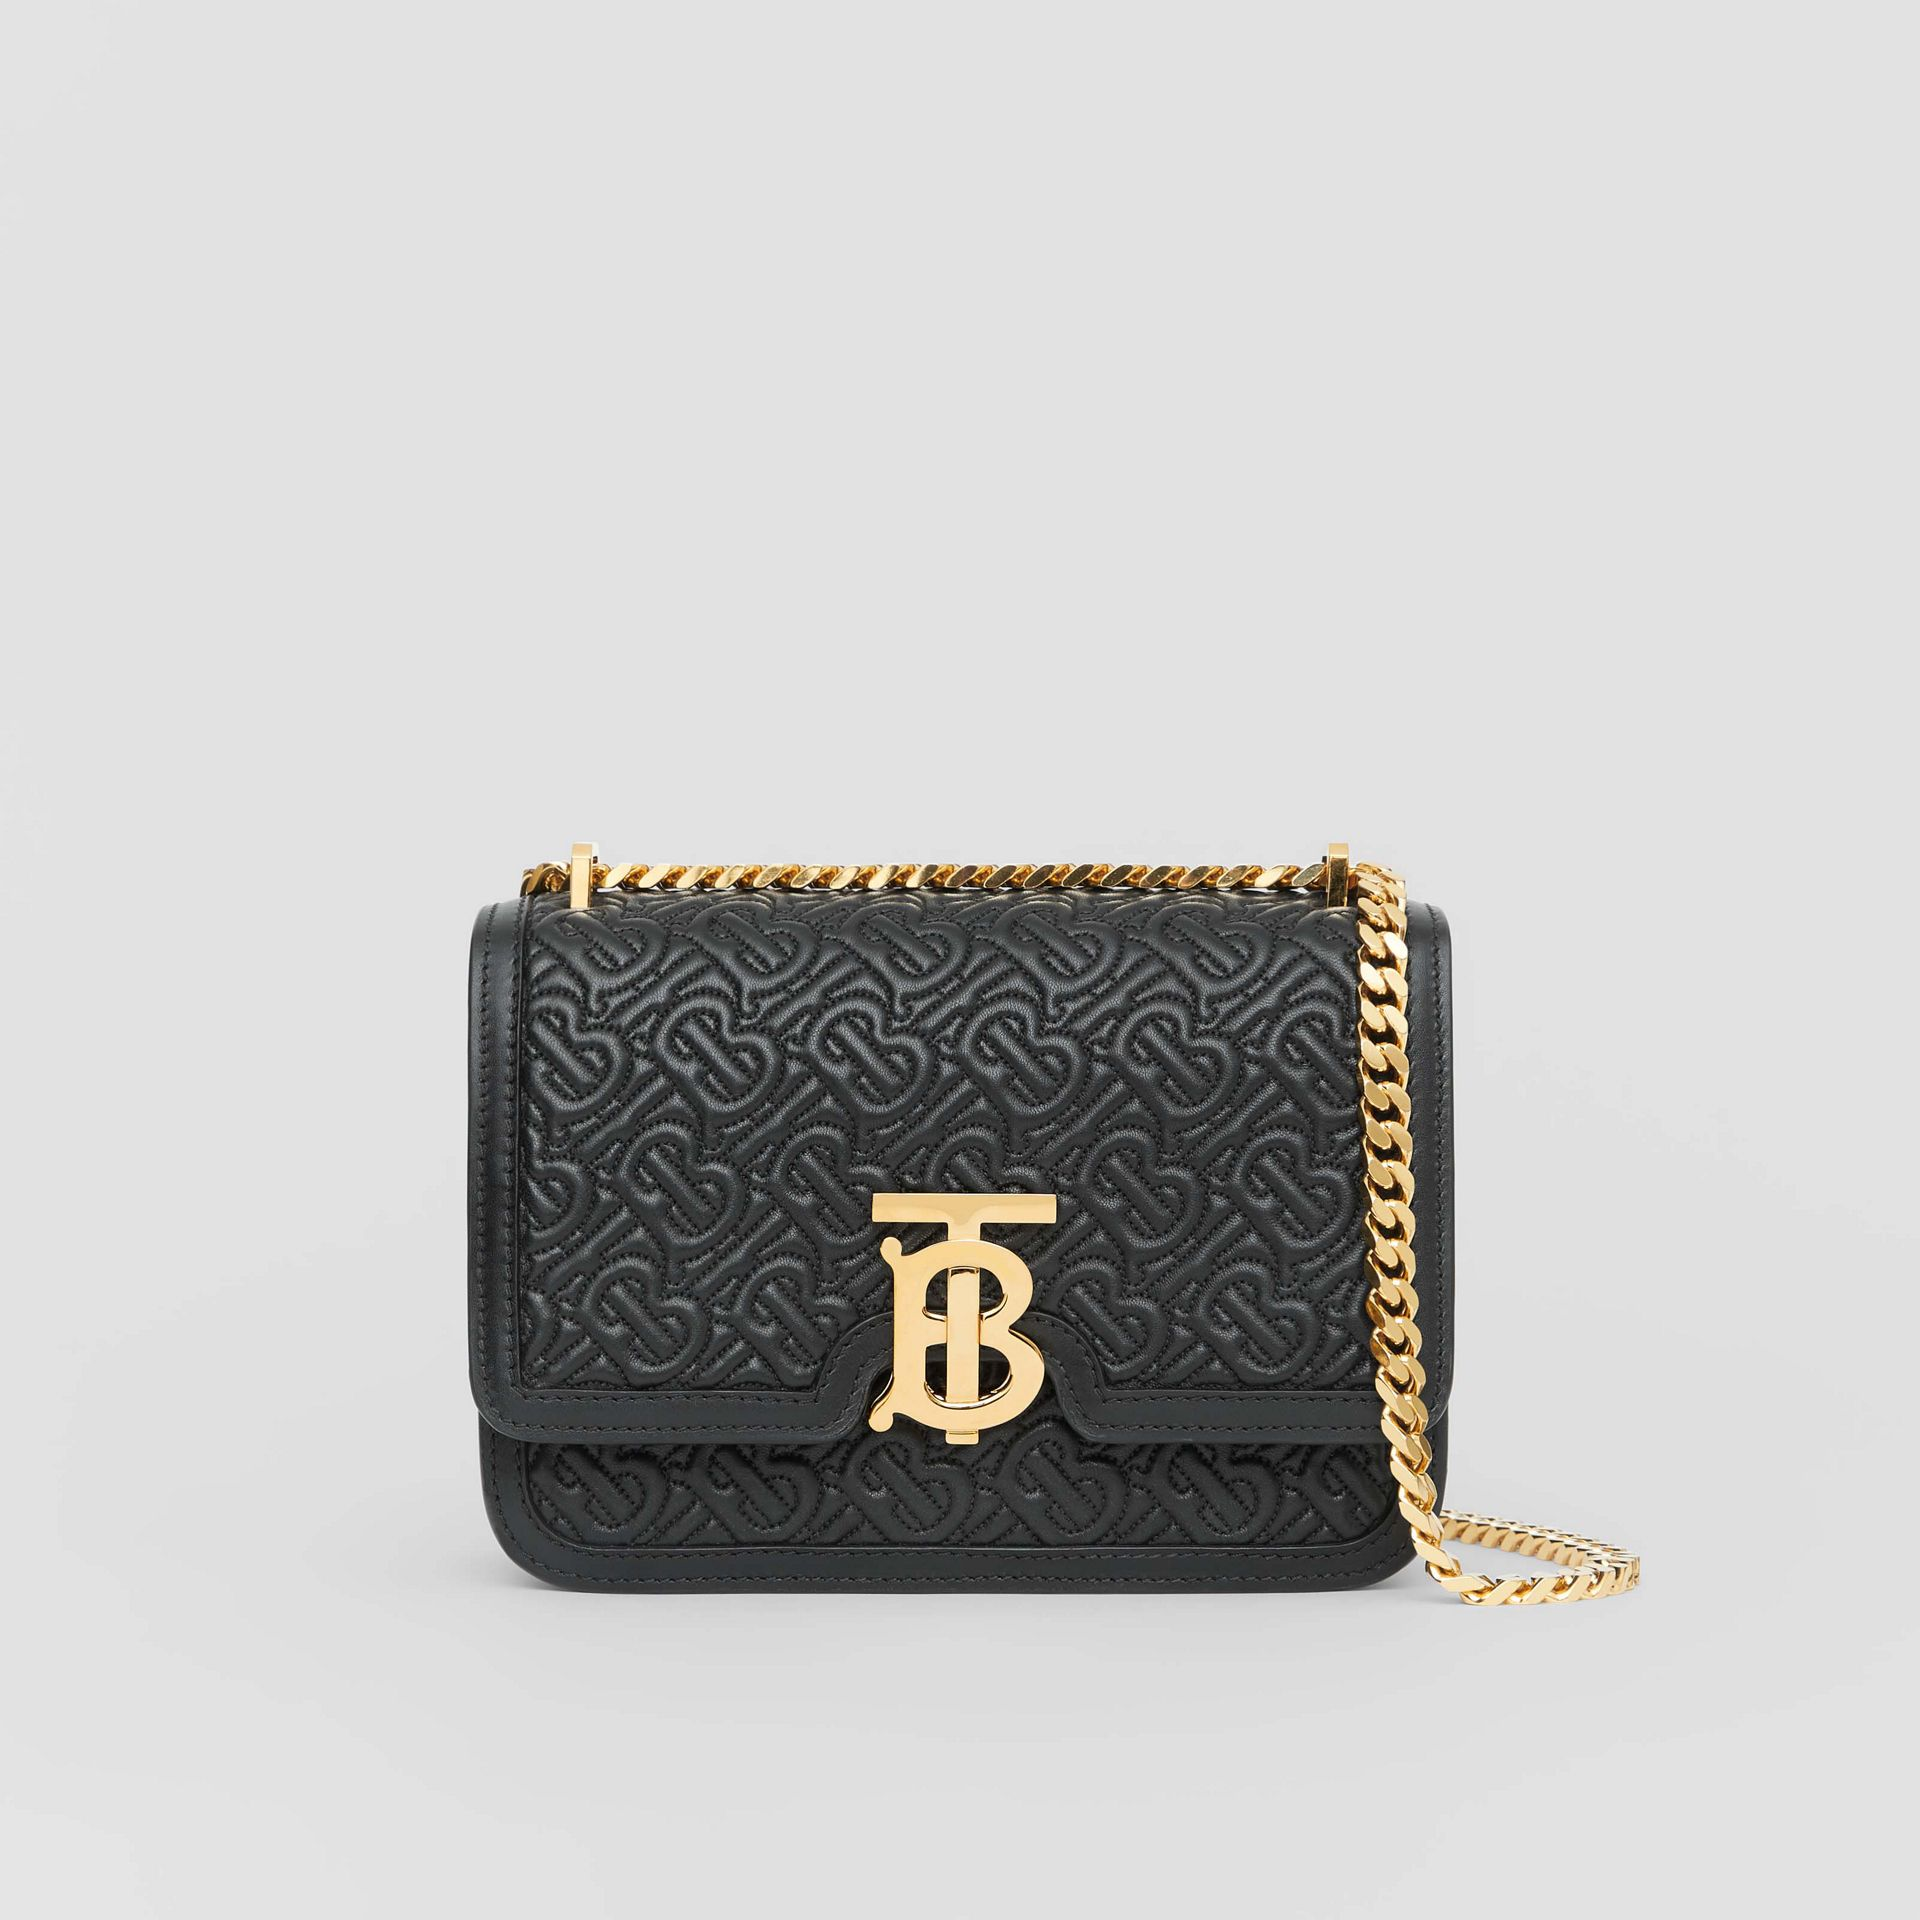 Small Quilted Monogram Lambskin TB Bag in Black - Women | Burberry Singapore - gallery image 0